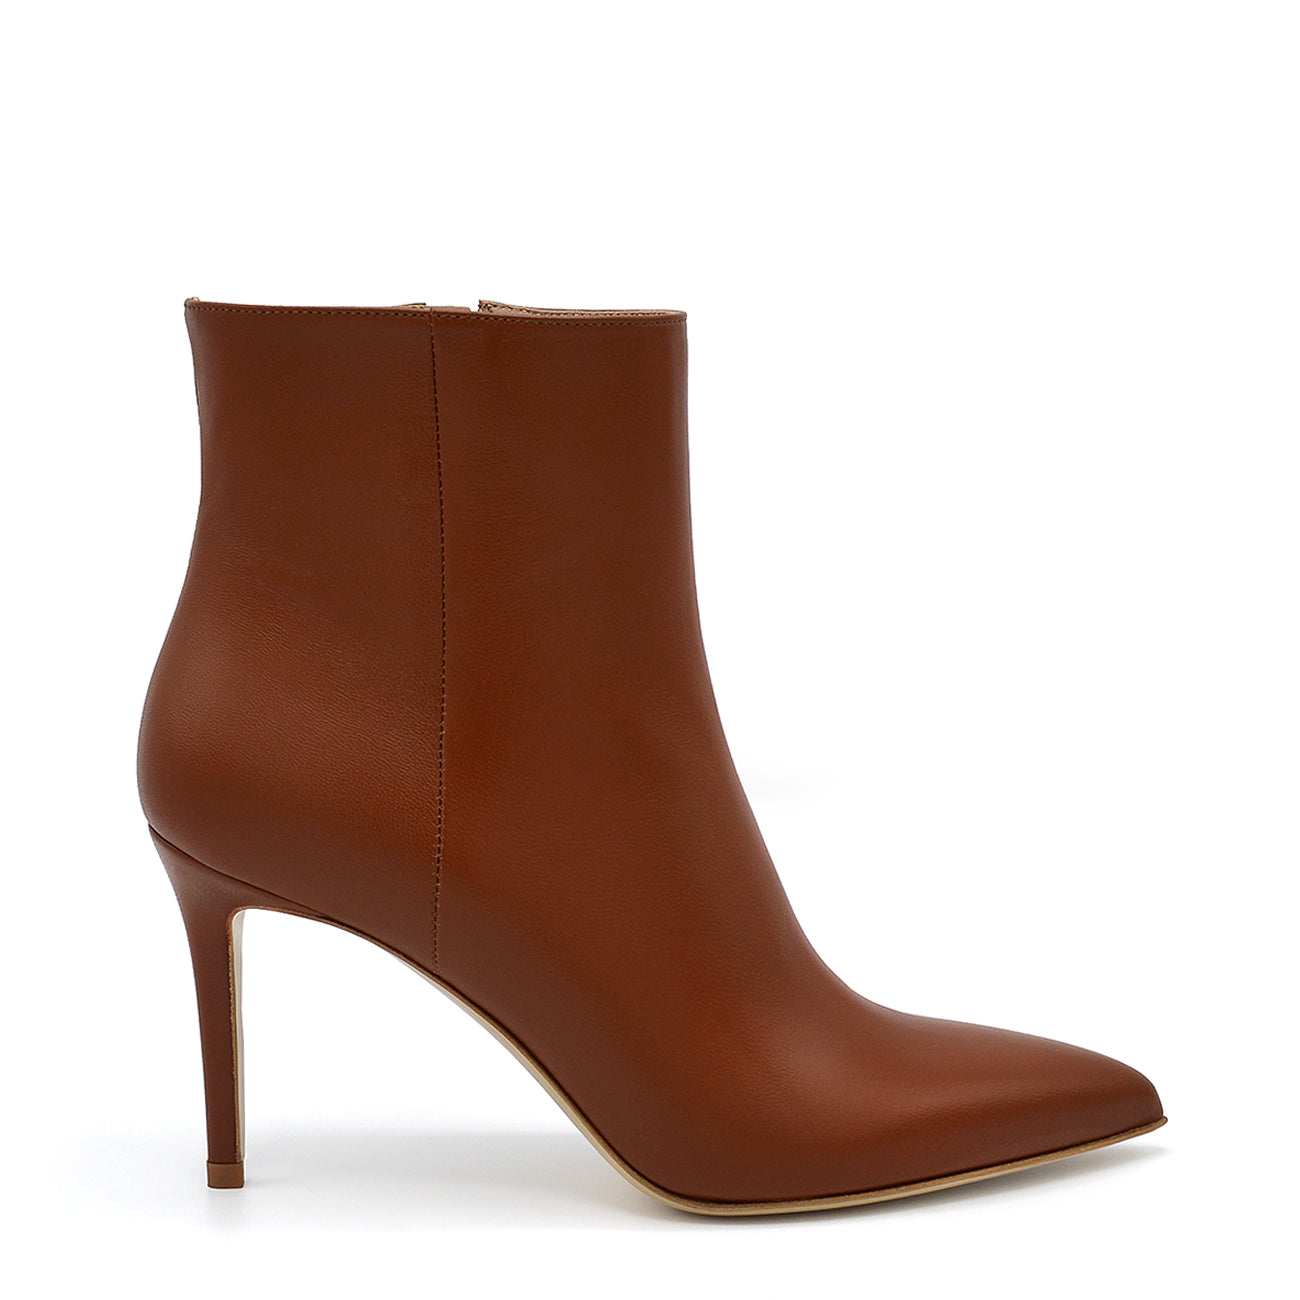 Debra. <br> Bark brown nappa leather ankle boots